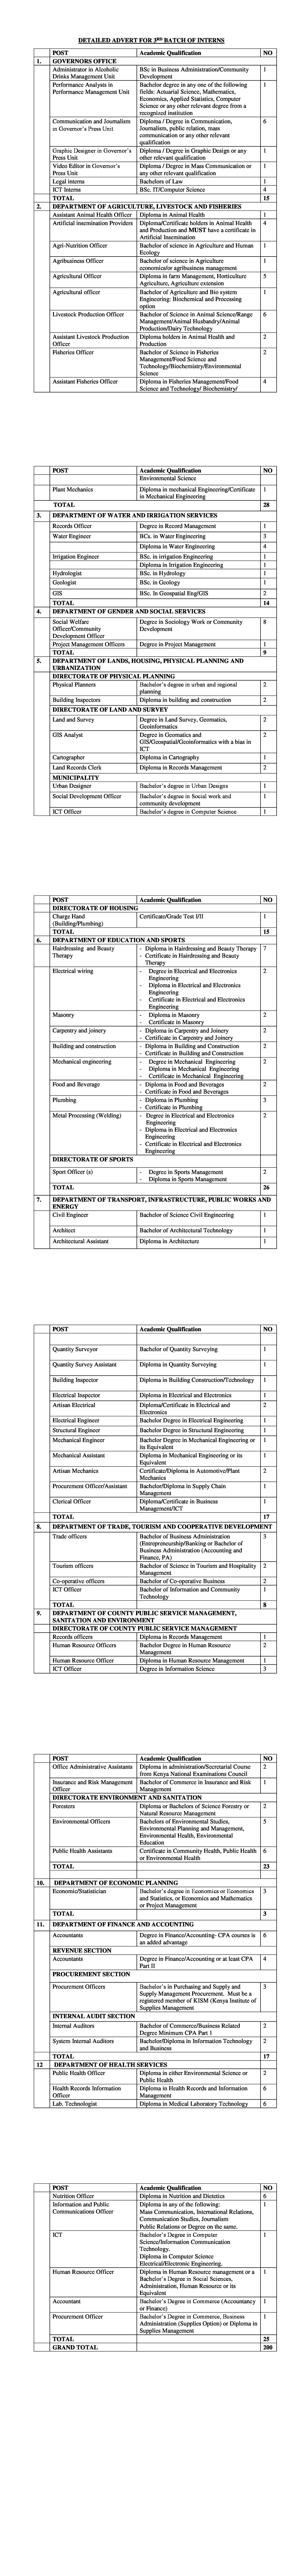 Internship Opportunities At County Of Nyeri – 40 Positions ...